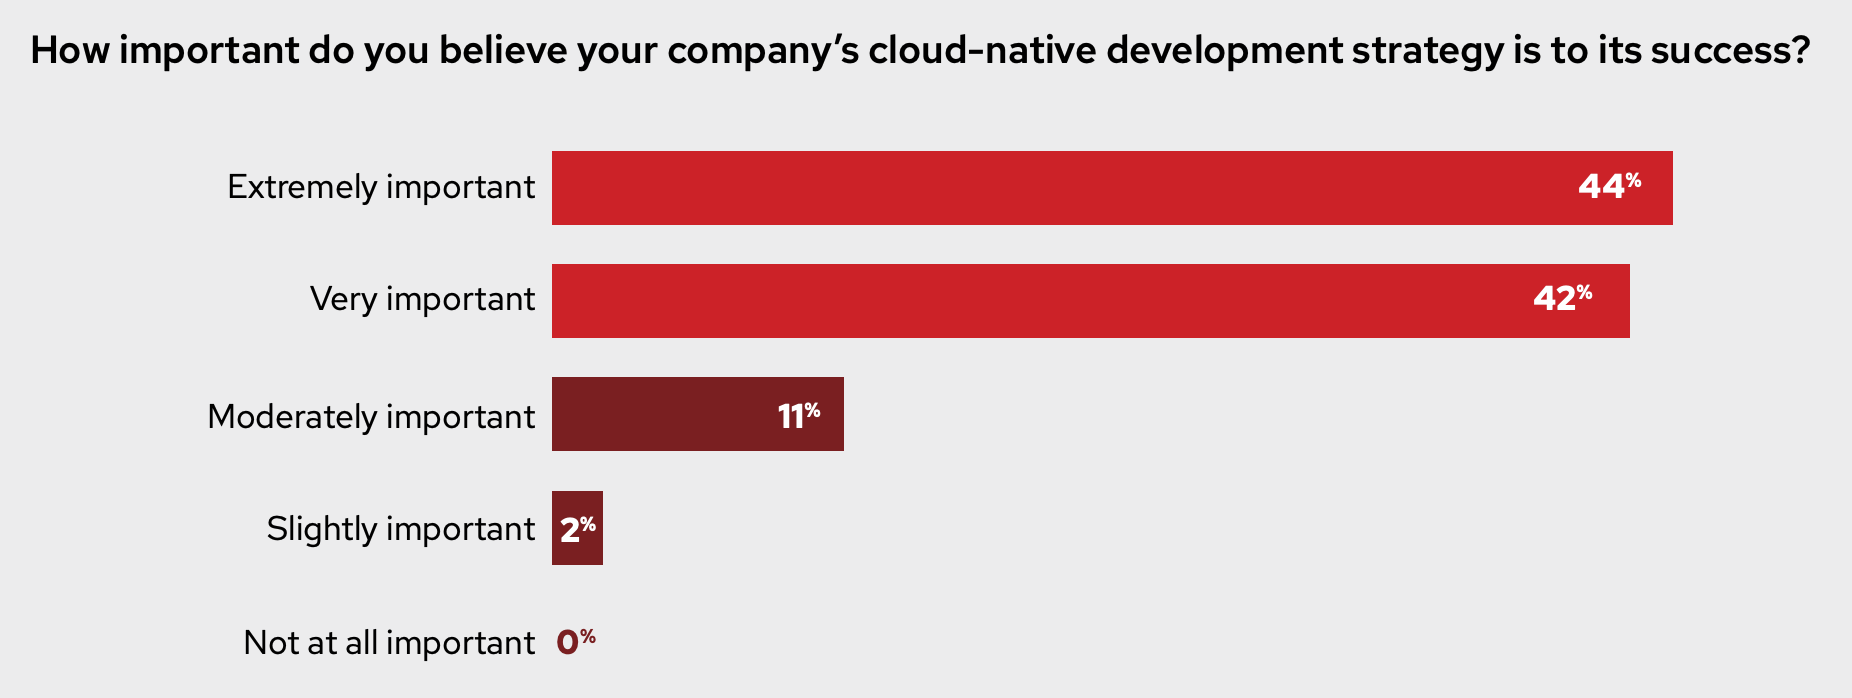 How important do you believe your company's cloud-native development strategy is to its success? Figure 1: Importance of cloud-native development for success